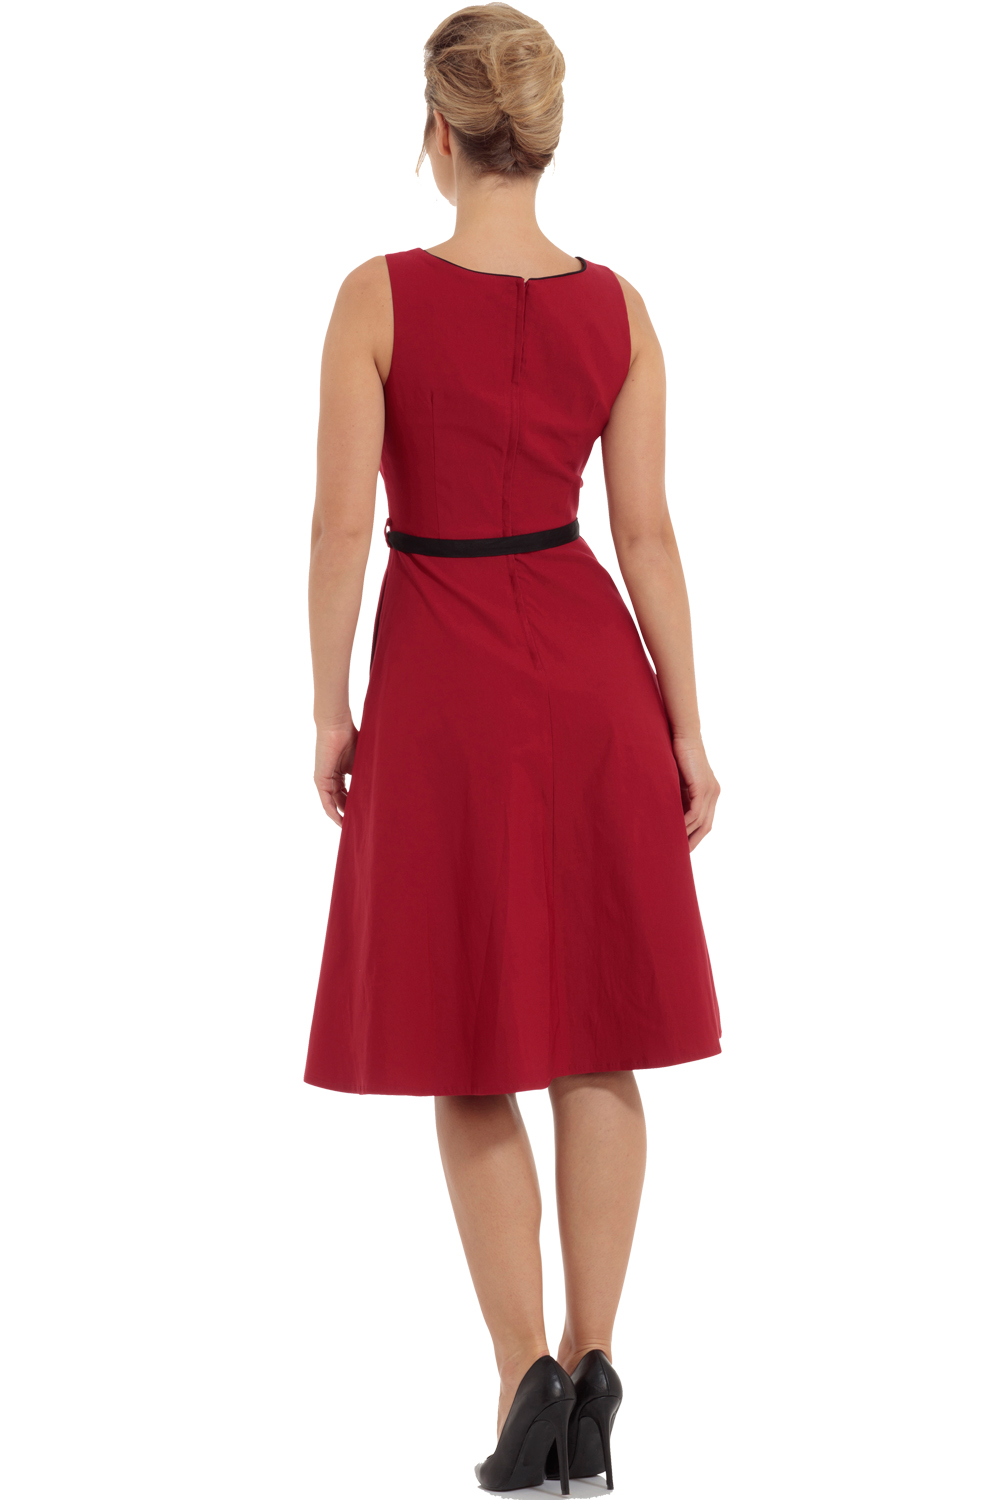 Voodoo Vixen Red 50s Marjorie Swing Dress